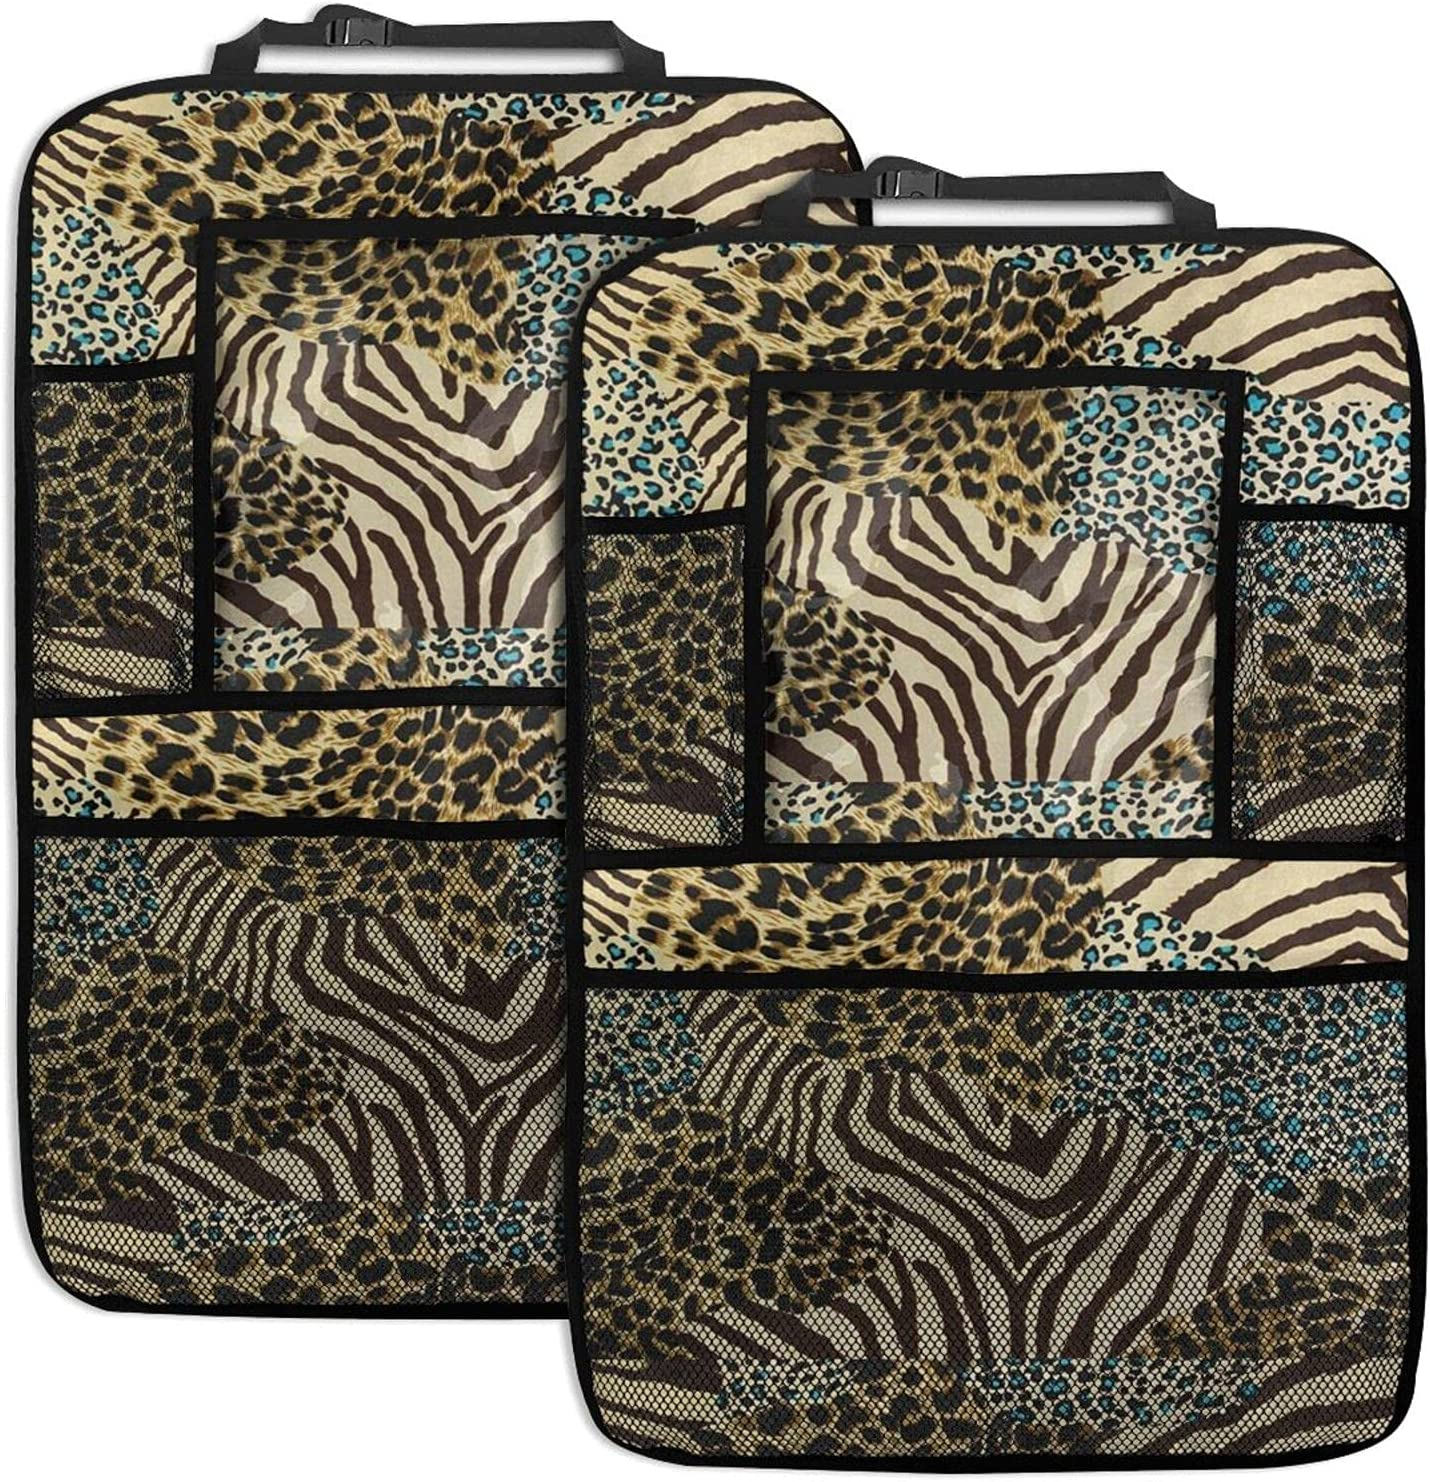 Leopard Print Max 55% OFF Car Seat Back Function Or Organizer Max 65% OFF Multi